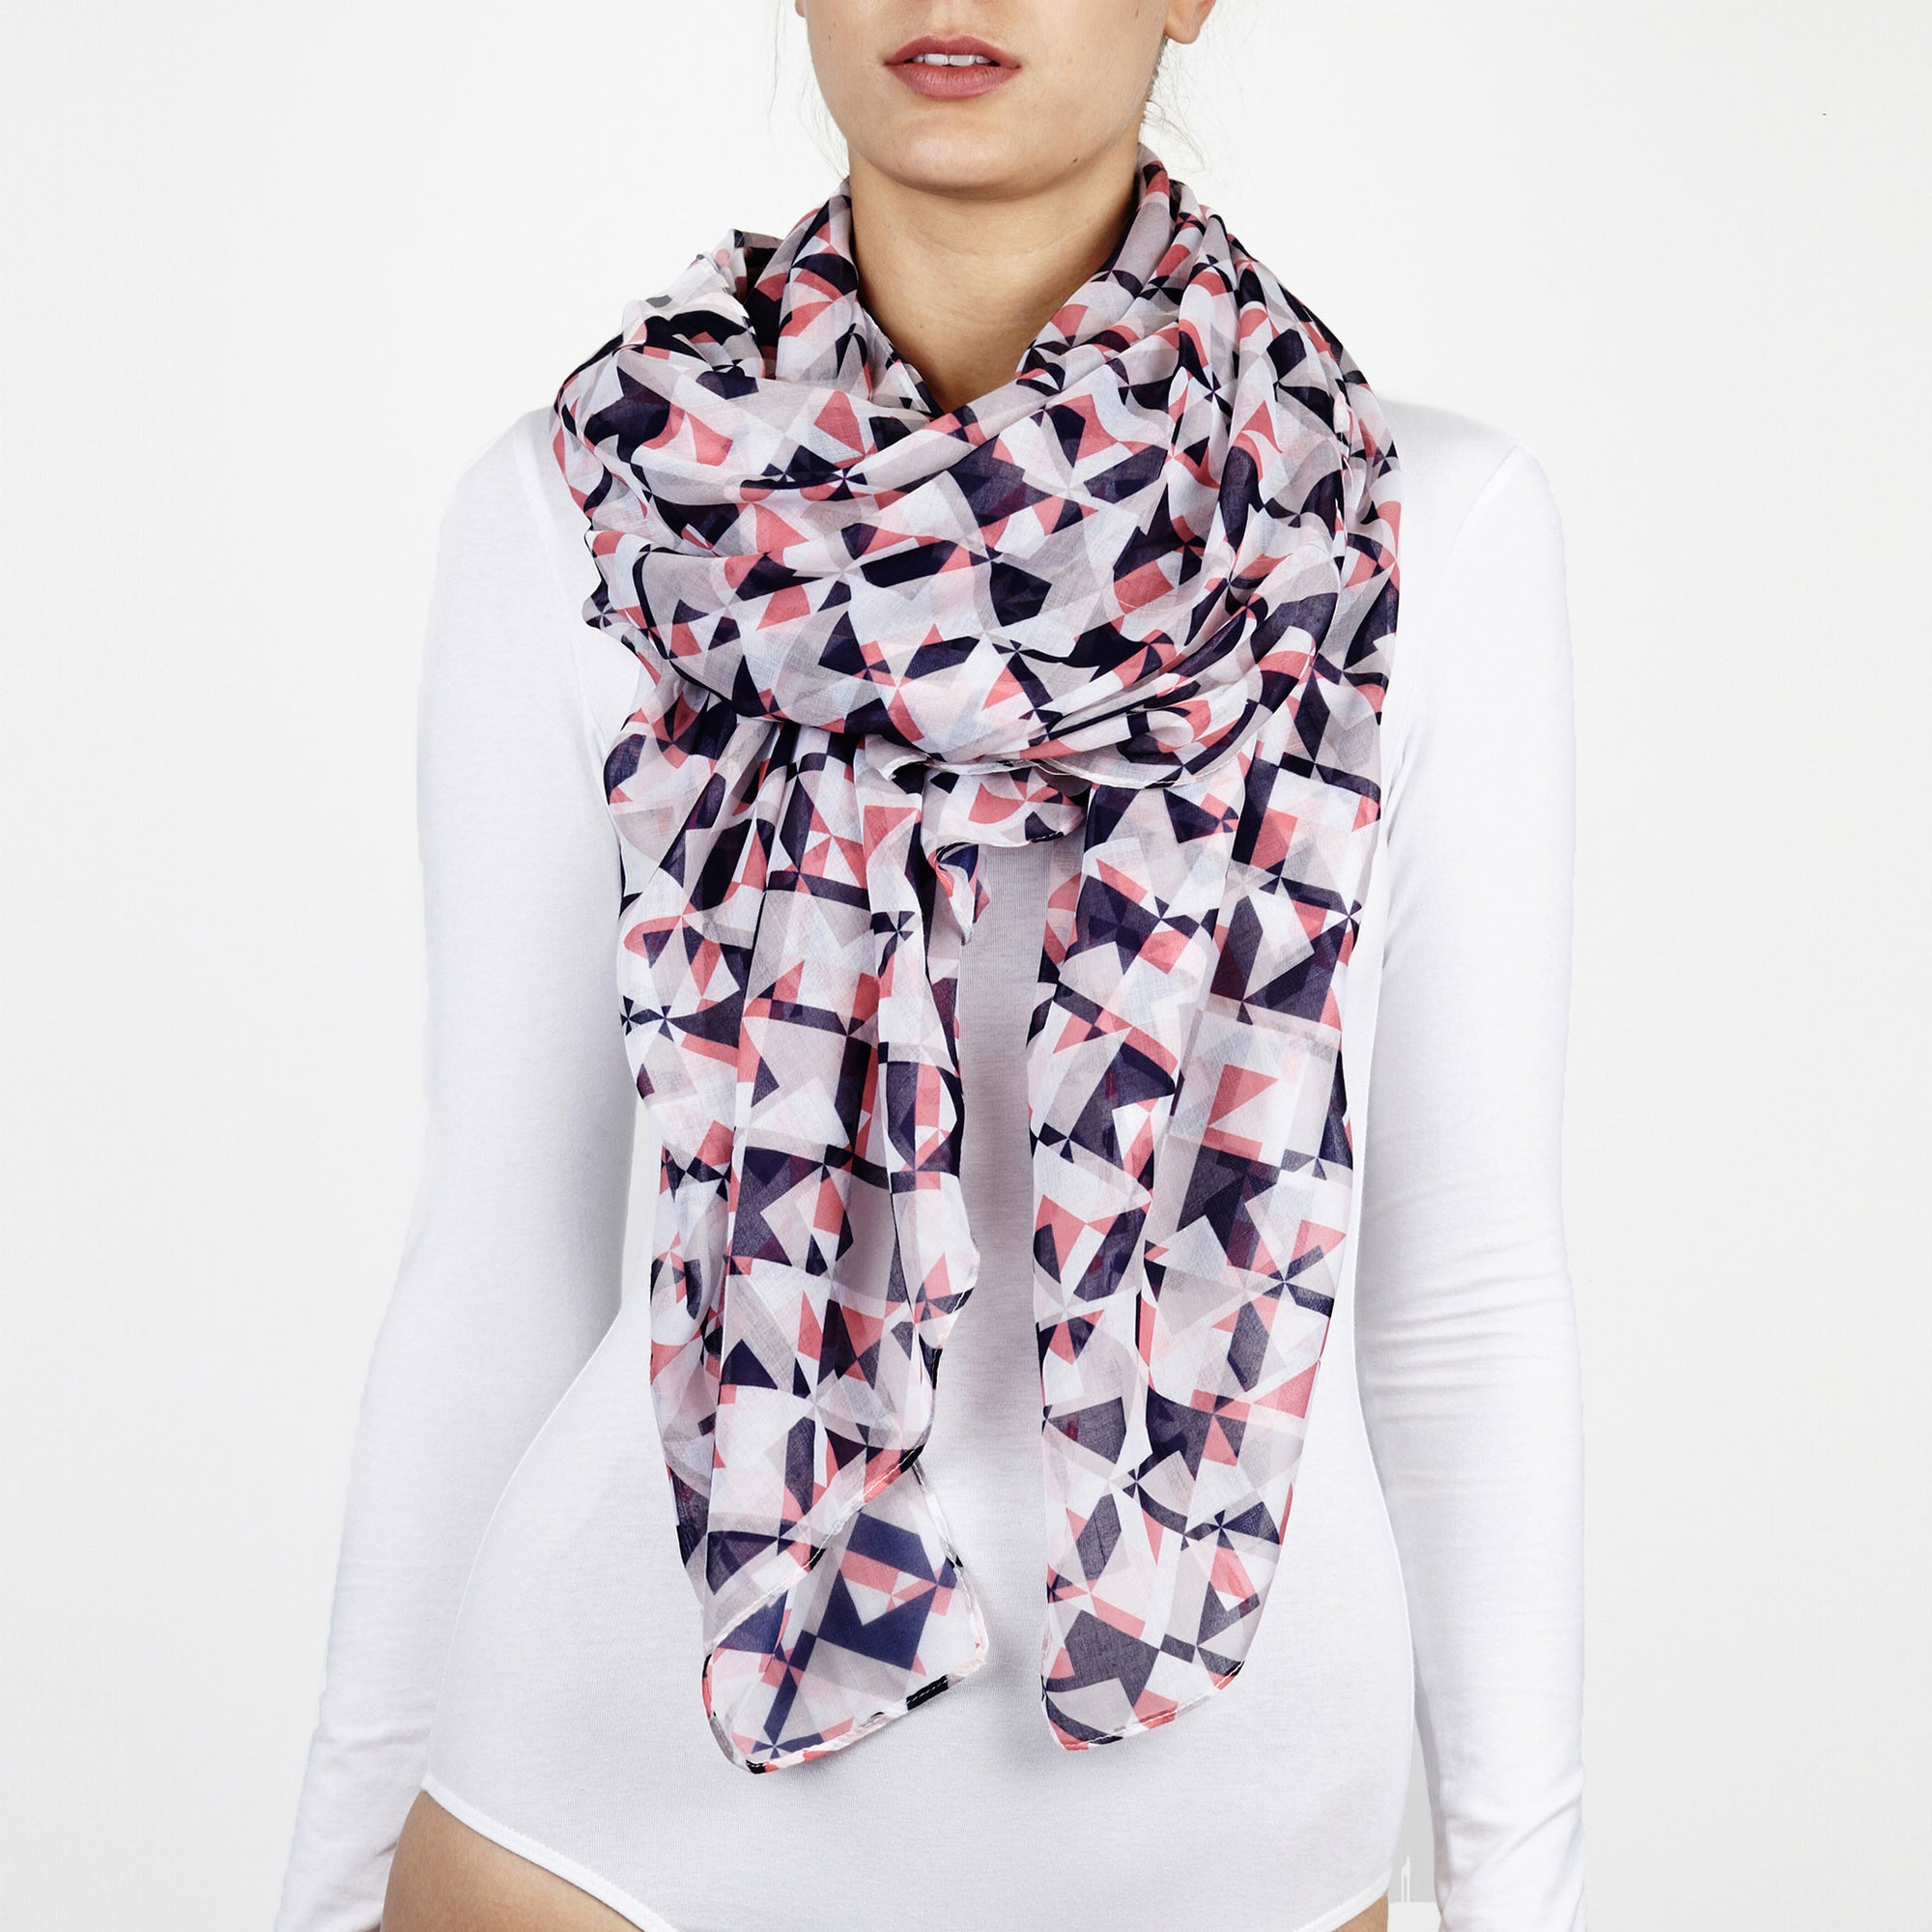 37709858b37ff Printed Village Women's Scarf - Patterned - Black/White - One Size -  Fractured Geo